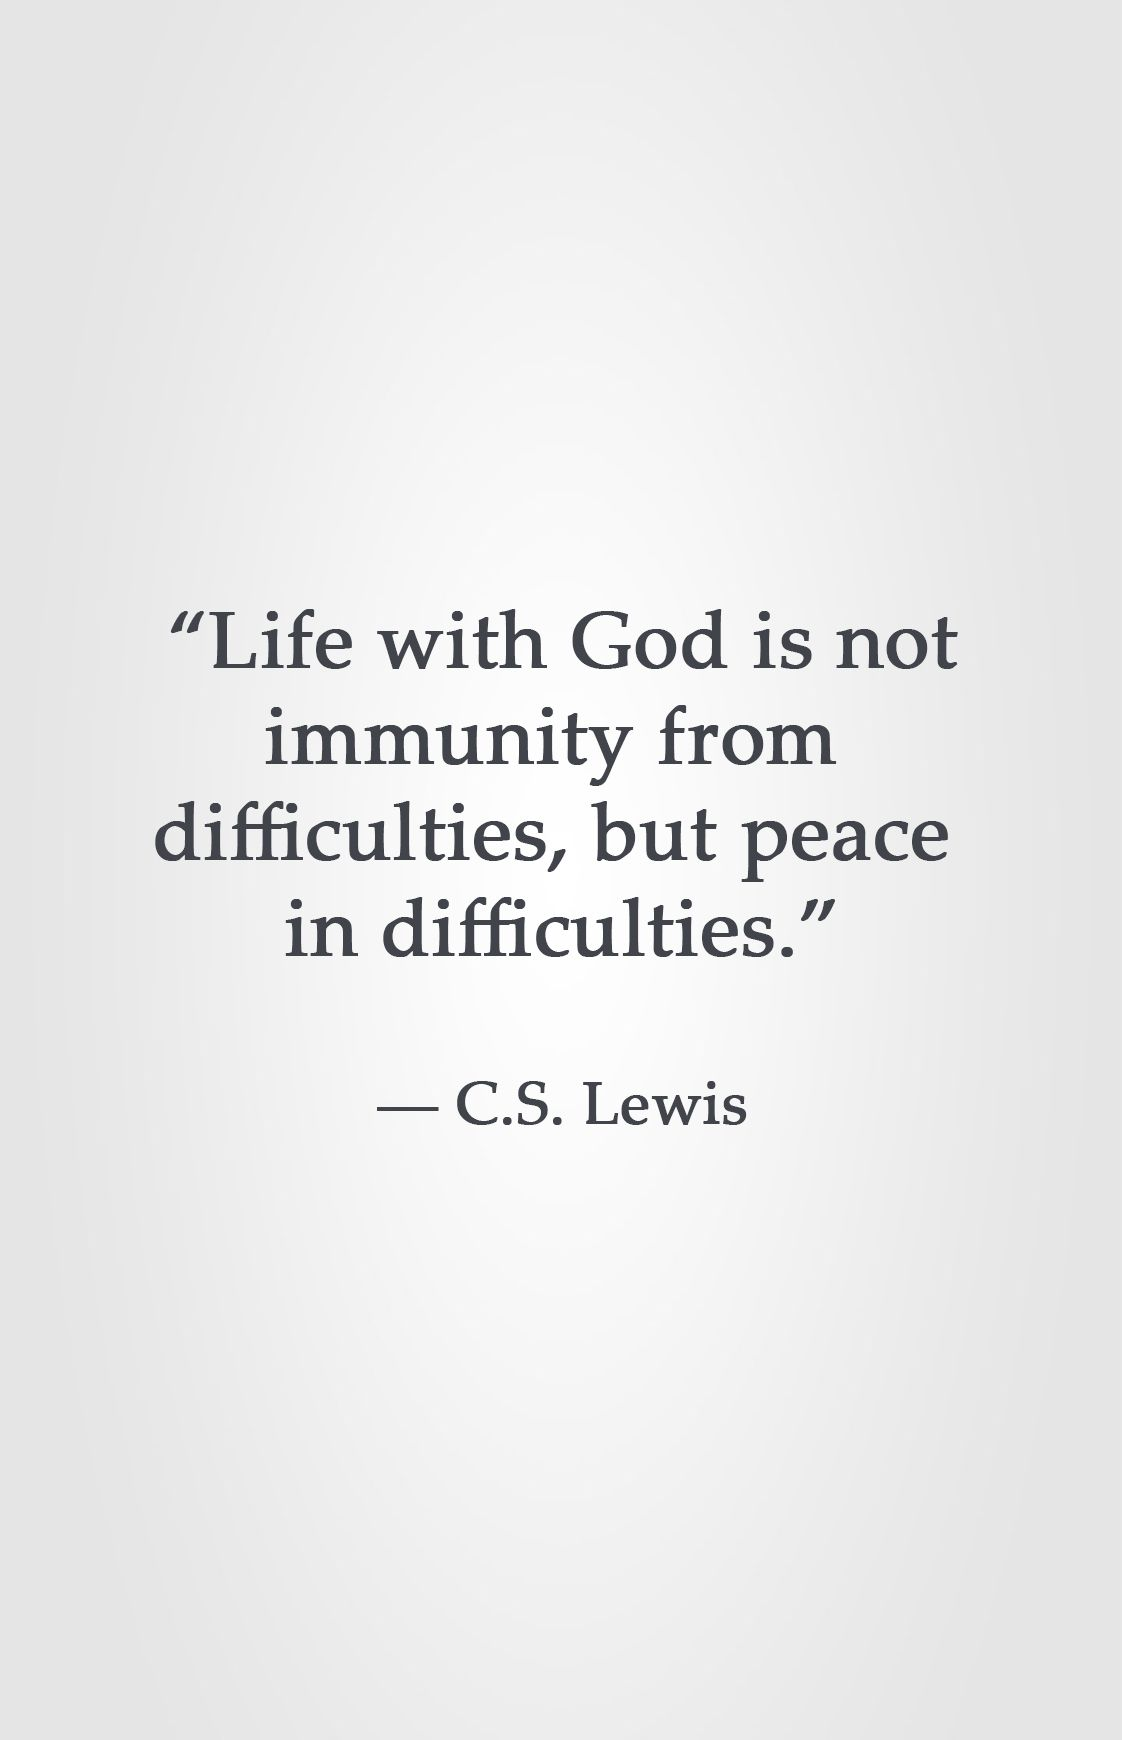 Christian Inspirational Quotes About Life Life With God Is Not Immunity From Difficulties But Peace In